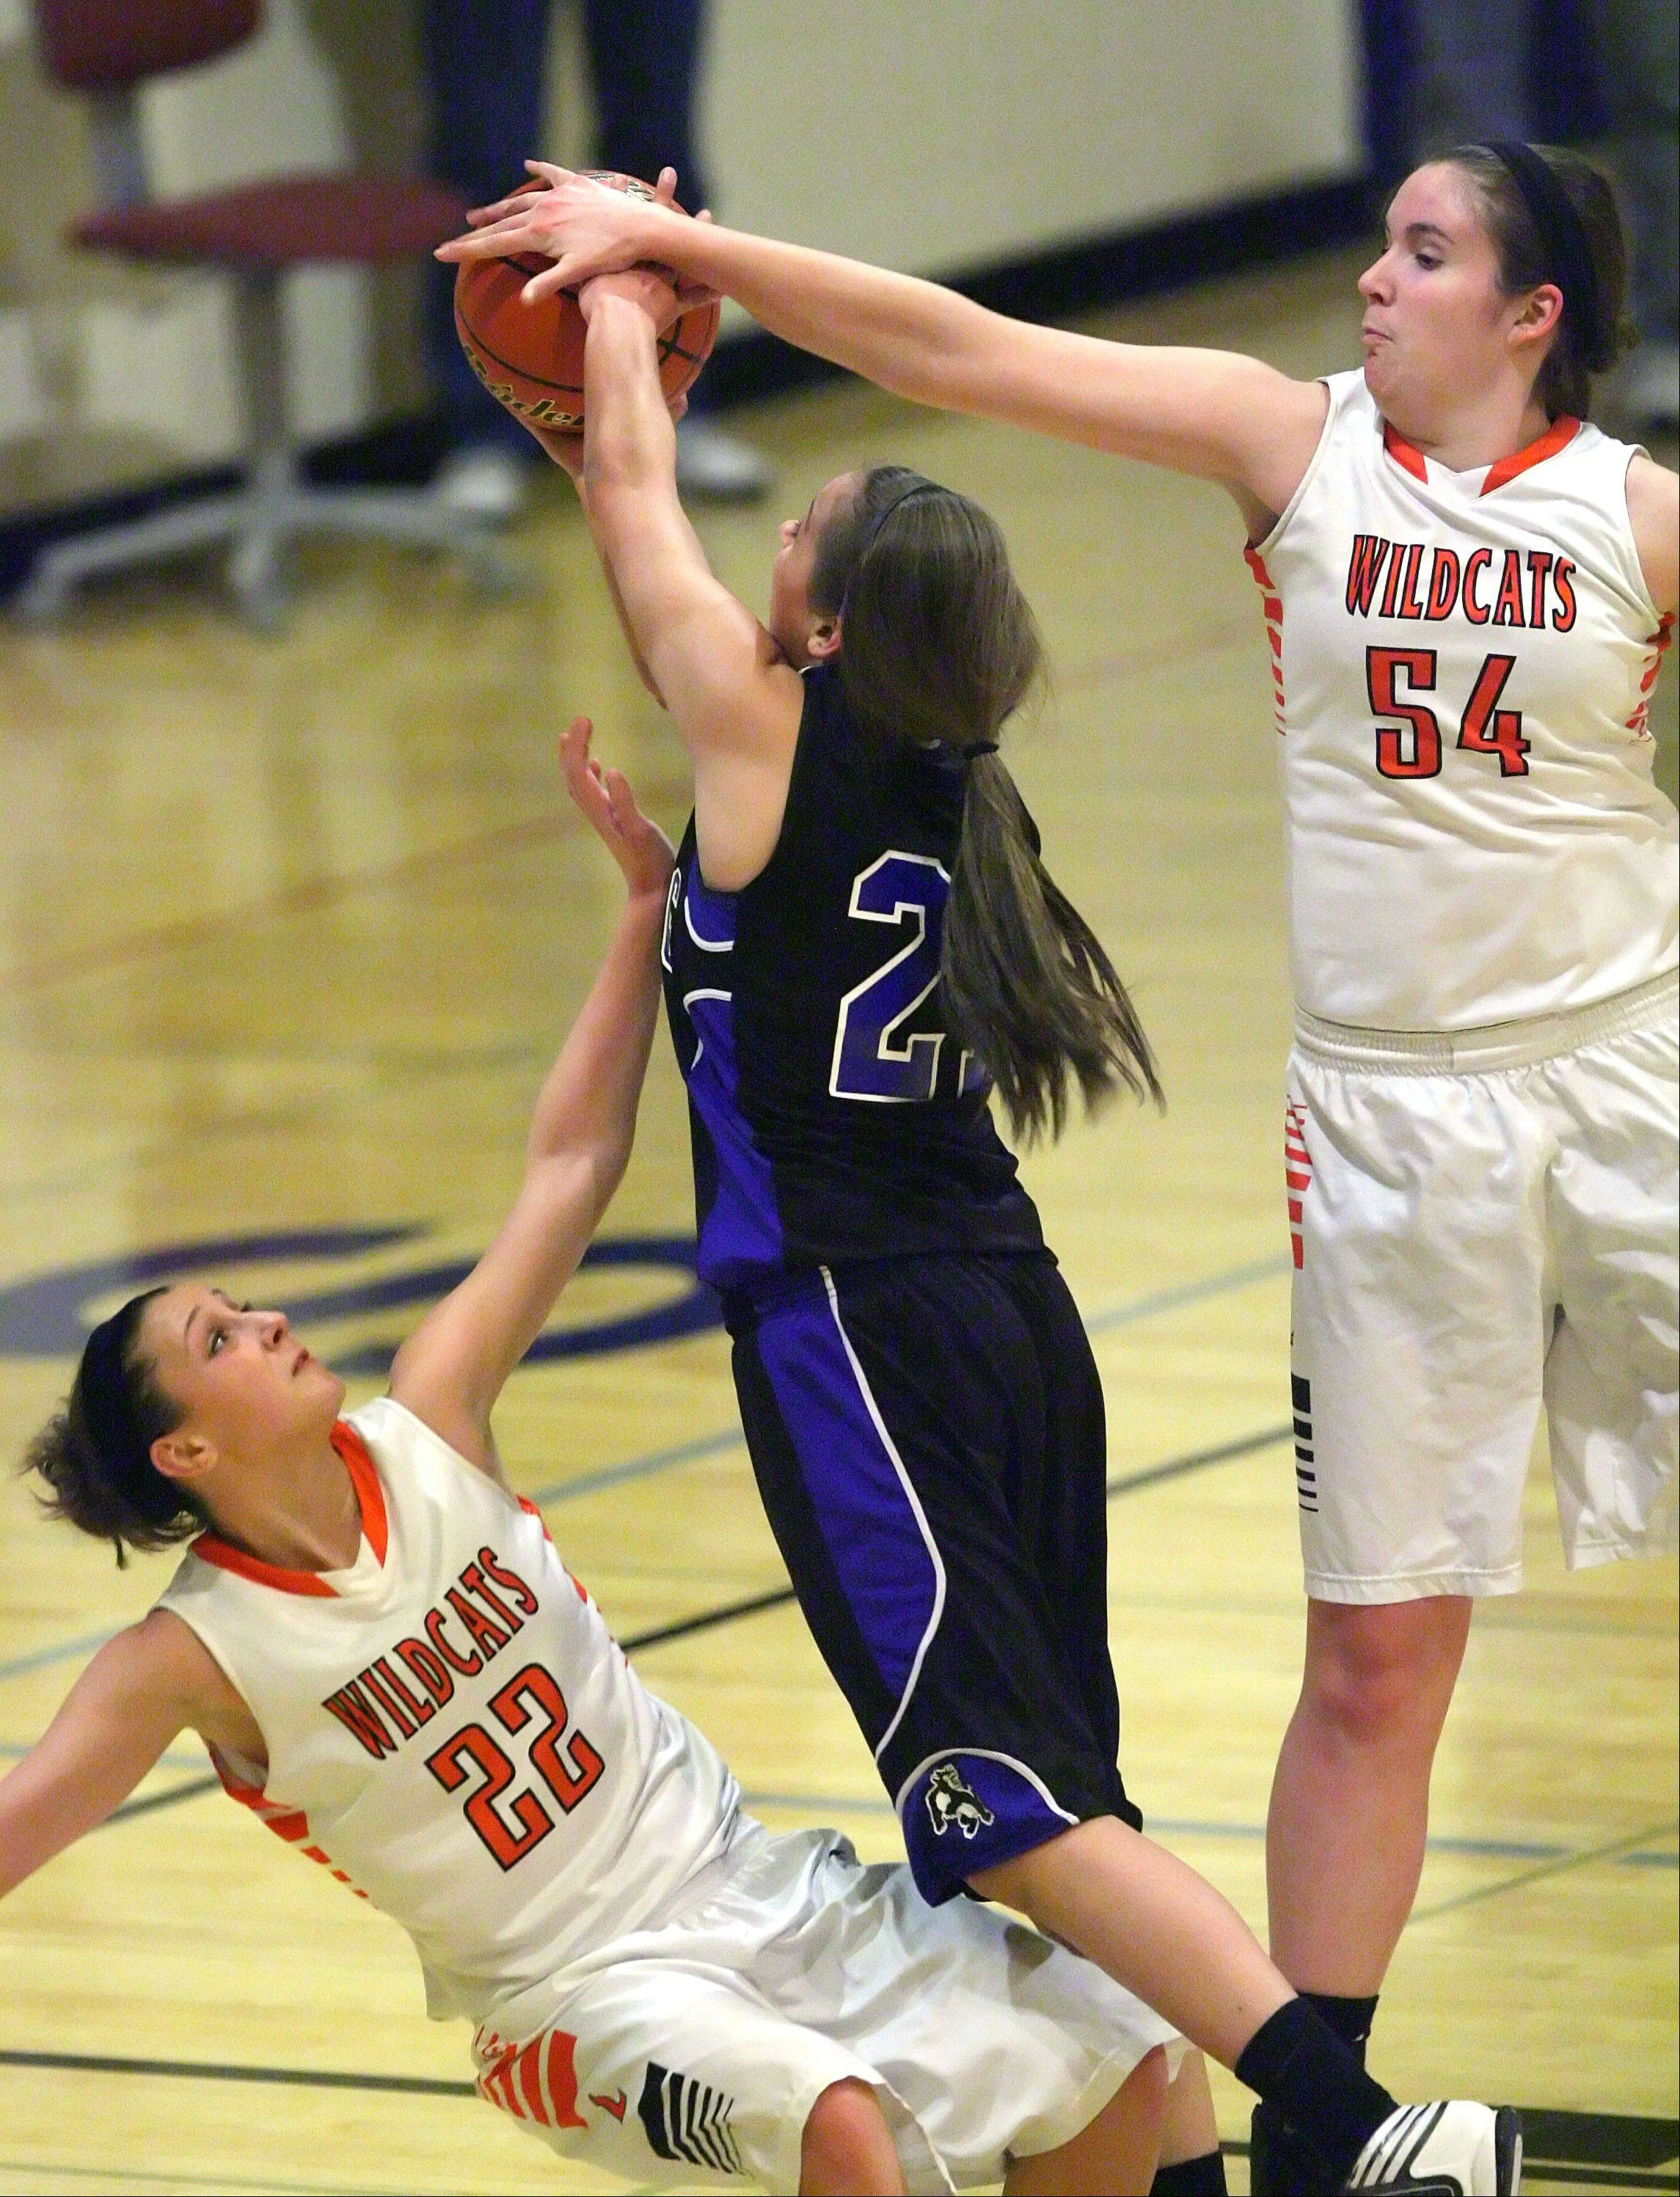 Wheeling's Deanna Kuzmanic drives in between Libertyville's Olivia Mayer, left, and Becky Deichl .